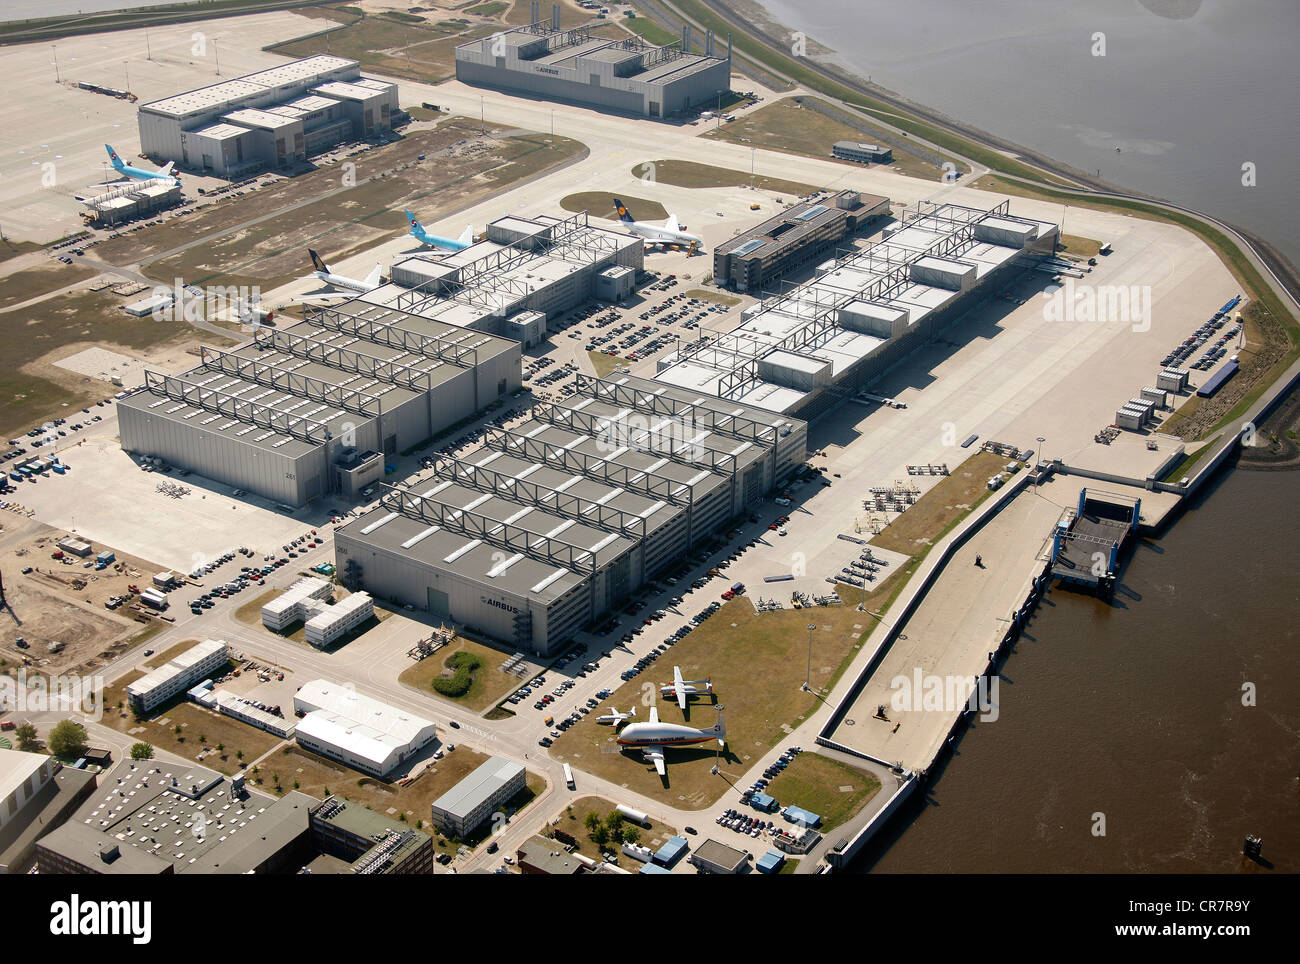 Aerial photo, premises of the aircraft manufacturer Airbus, Hamburg, Germany, Europe - Stock Image